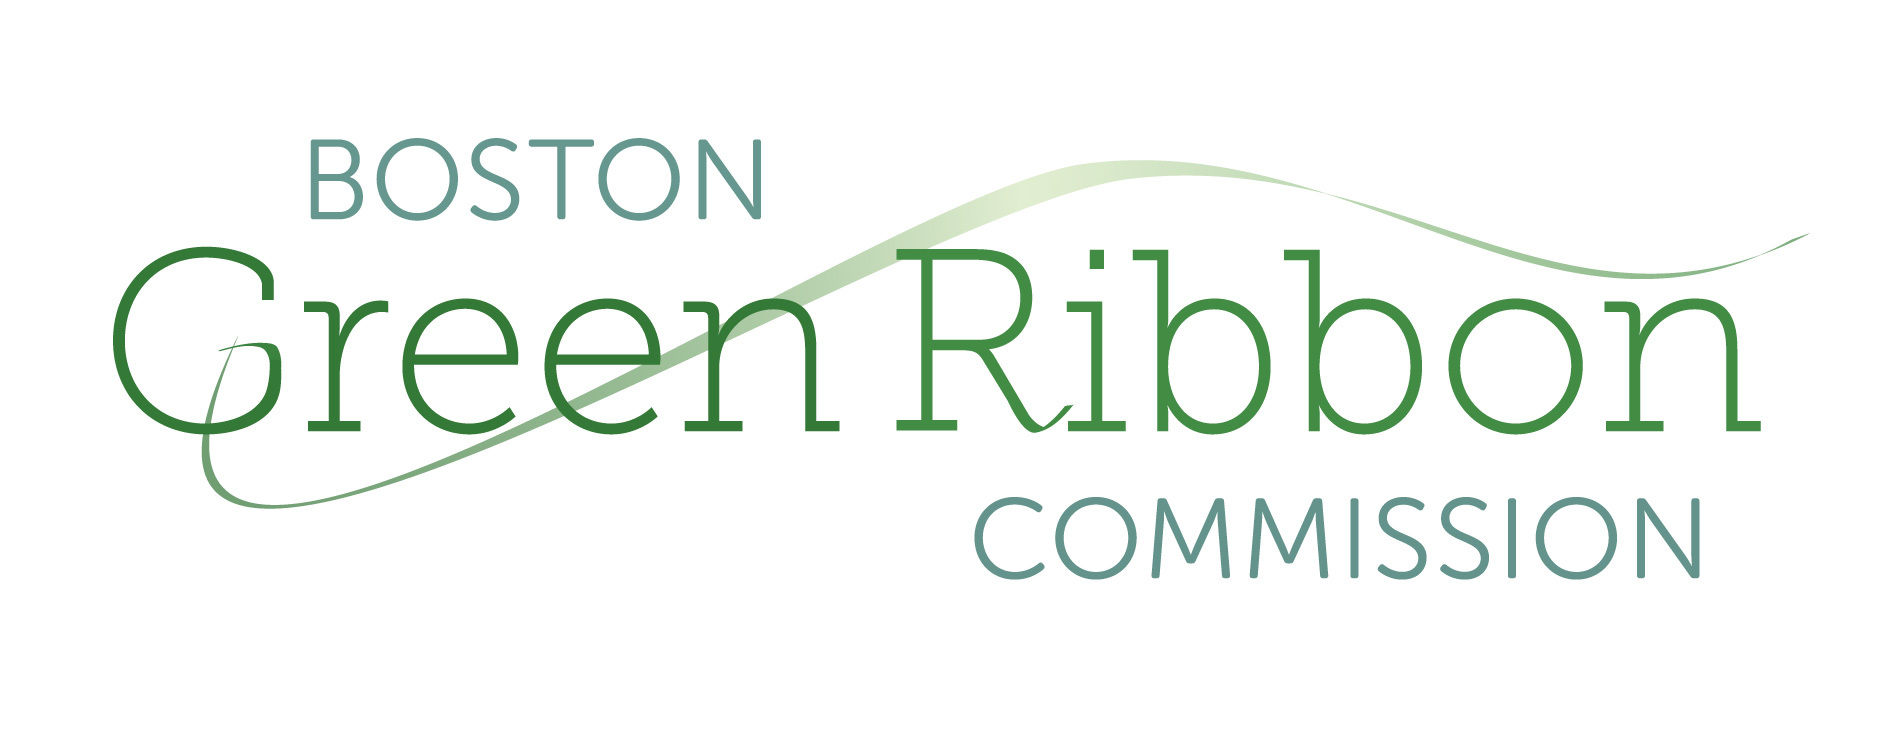 Boston Green Ribbon Commission